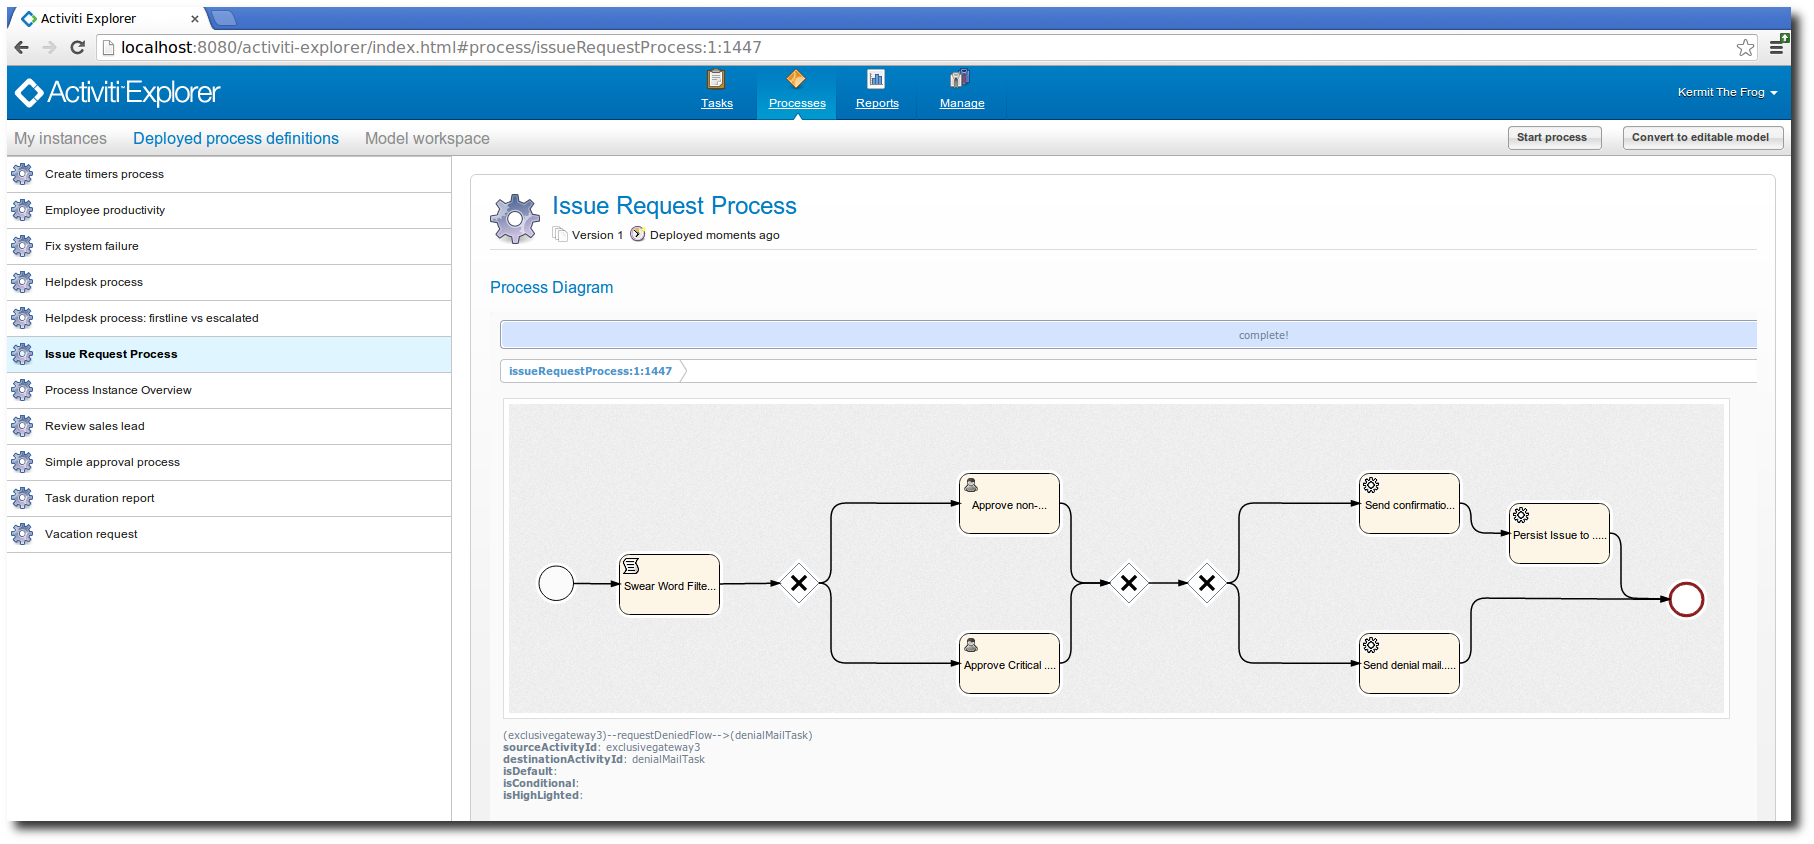 Hascode blog archive business process modeling with activiti imported process definition in the activiti explorer ccuart Images